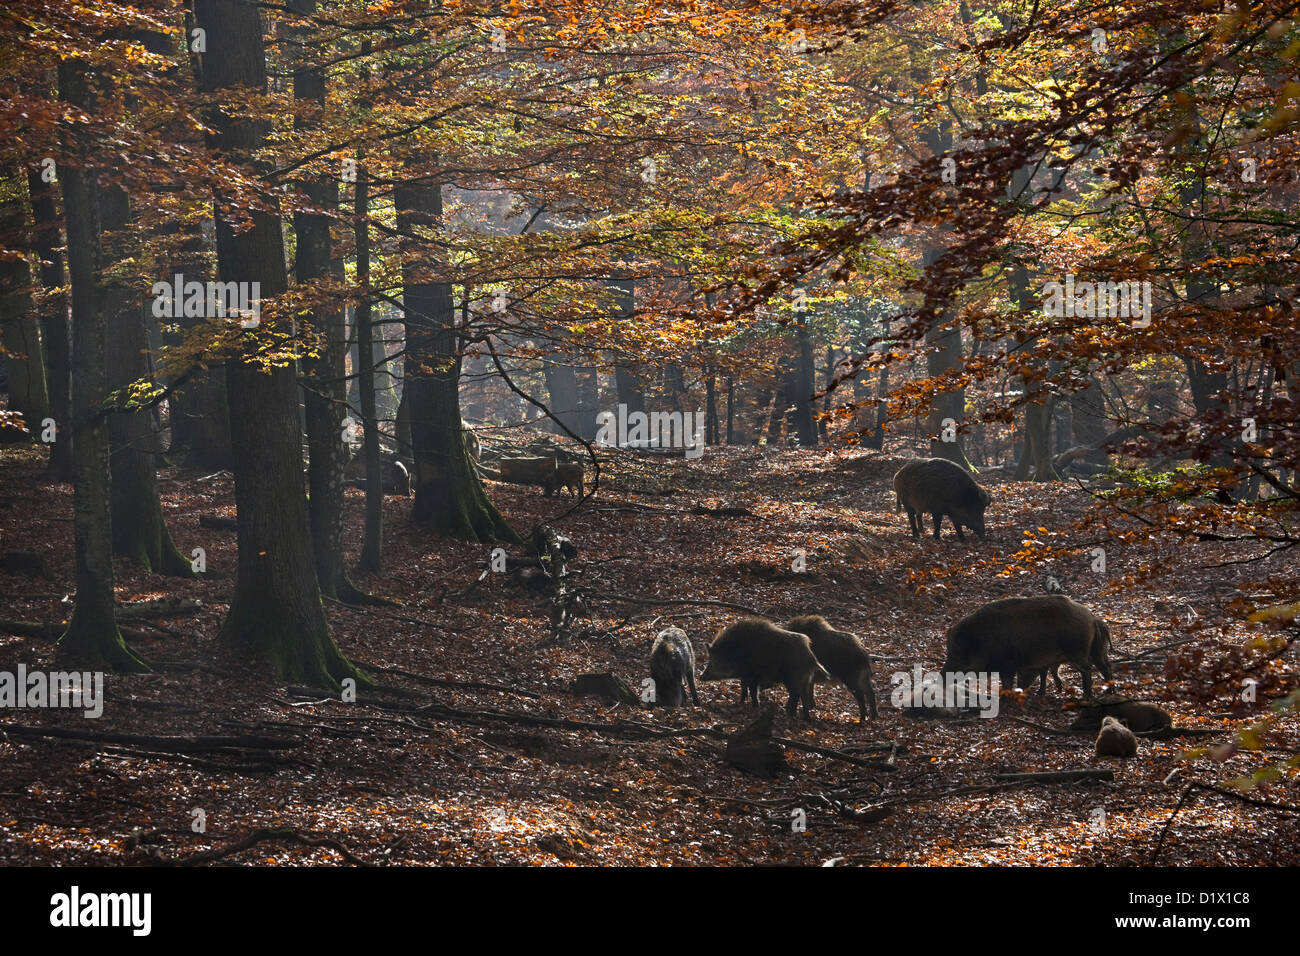 Sounder of wild boars (Sus scrofa) foraging in autumn forest in the Belgian Ardennes, Belgium - Stock Image